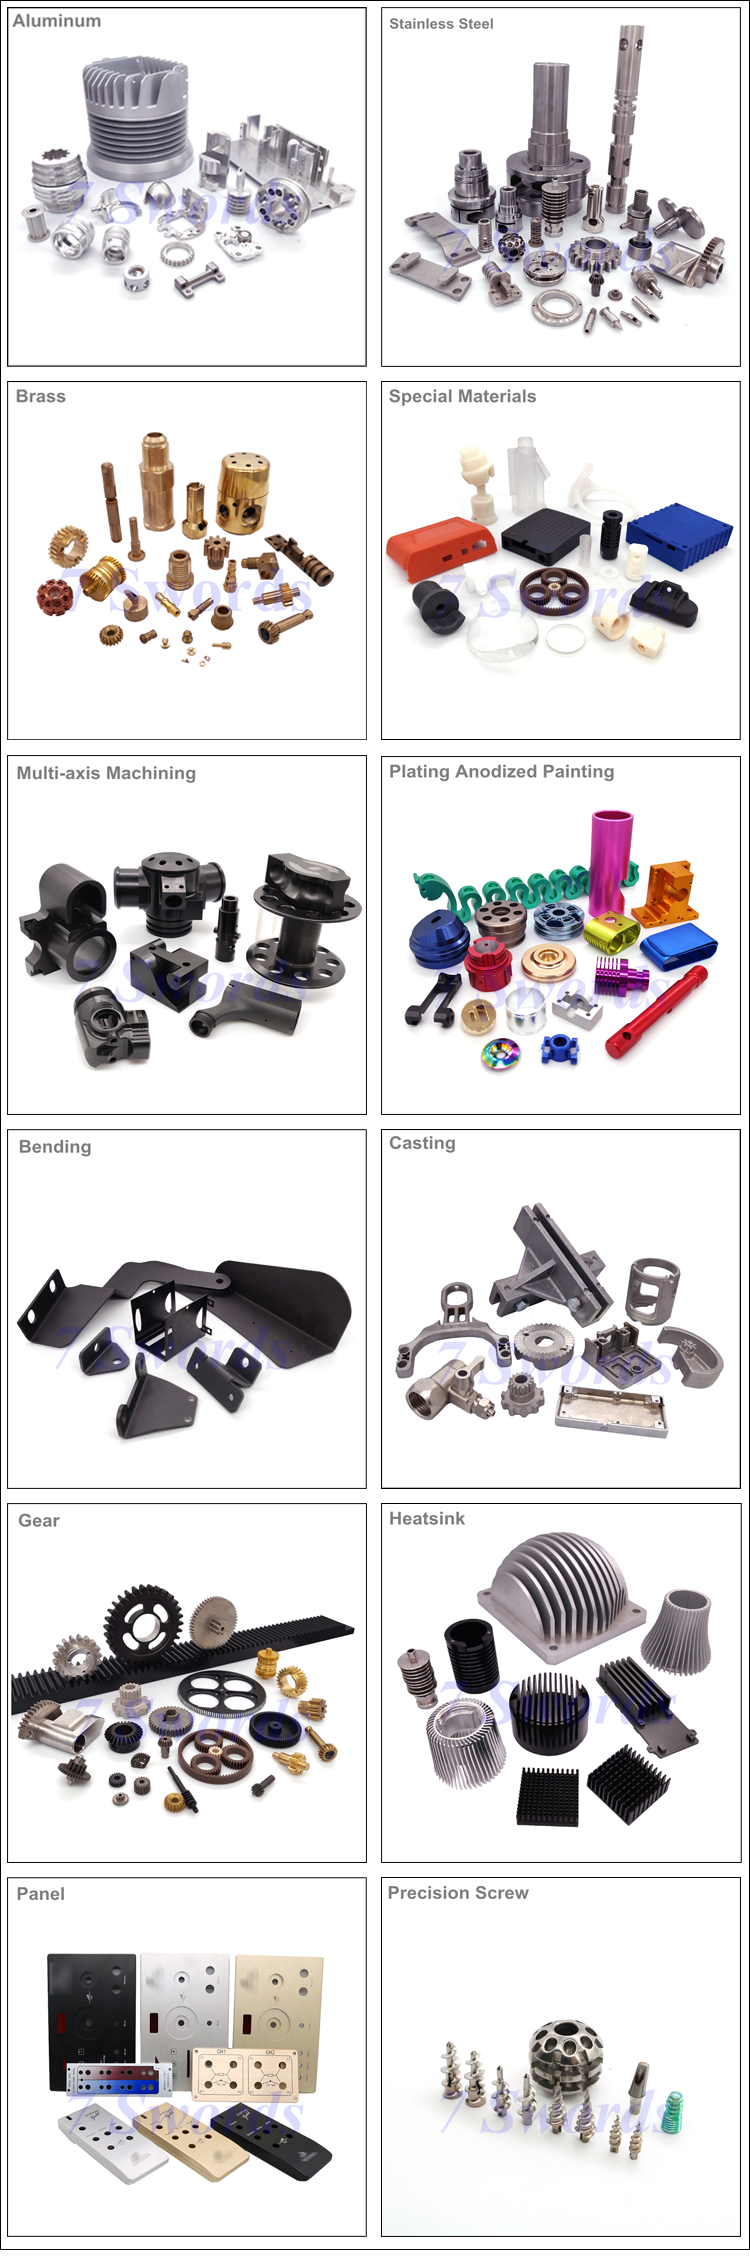 CNC Milling Turning Precision Custom Metal Parts Small Mechanical Parts Mechanical Parts Fabrication Service